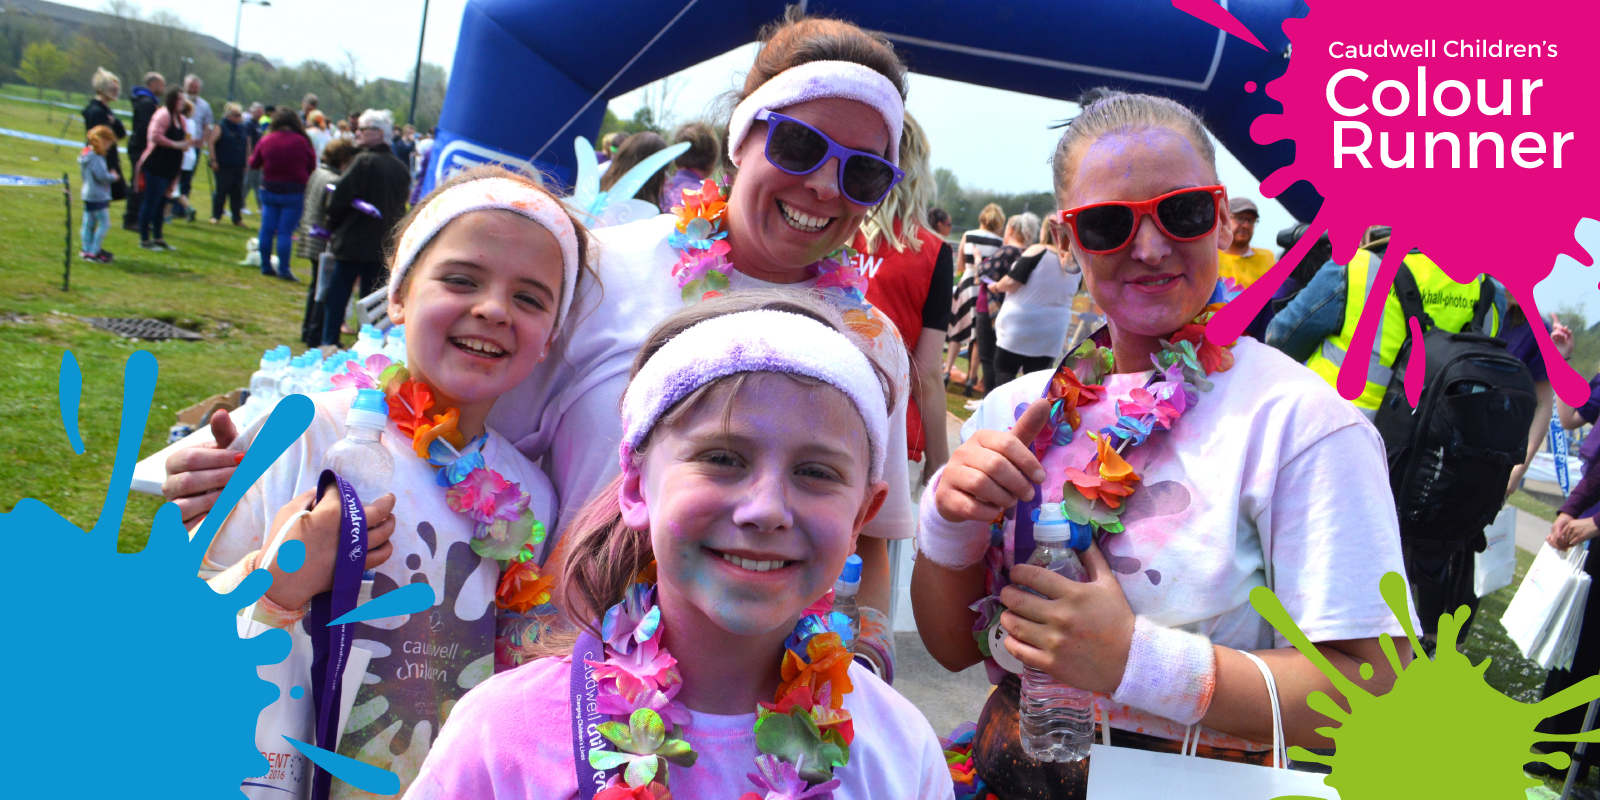 a family at the Colour Runner